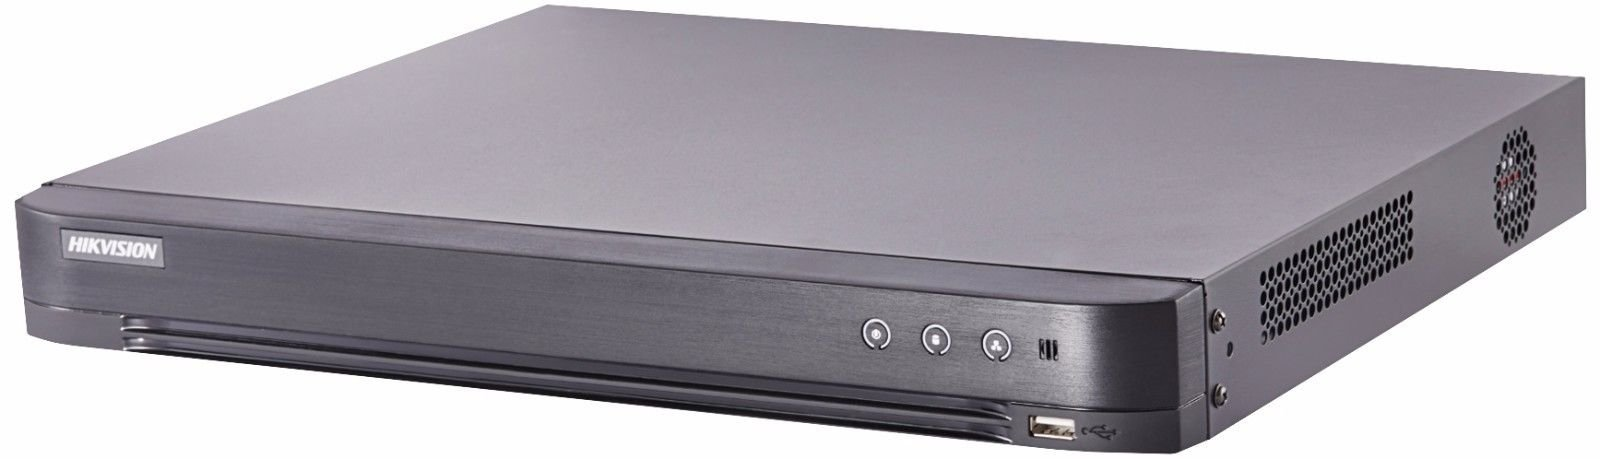 Hikvision DS 7216HQHI K2 SUPPORTS CH1 CH4 INCLUDED